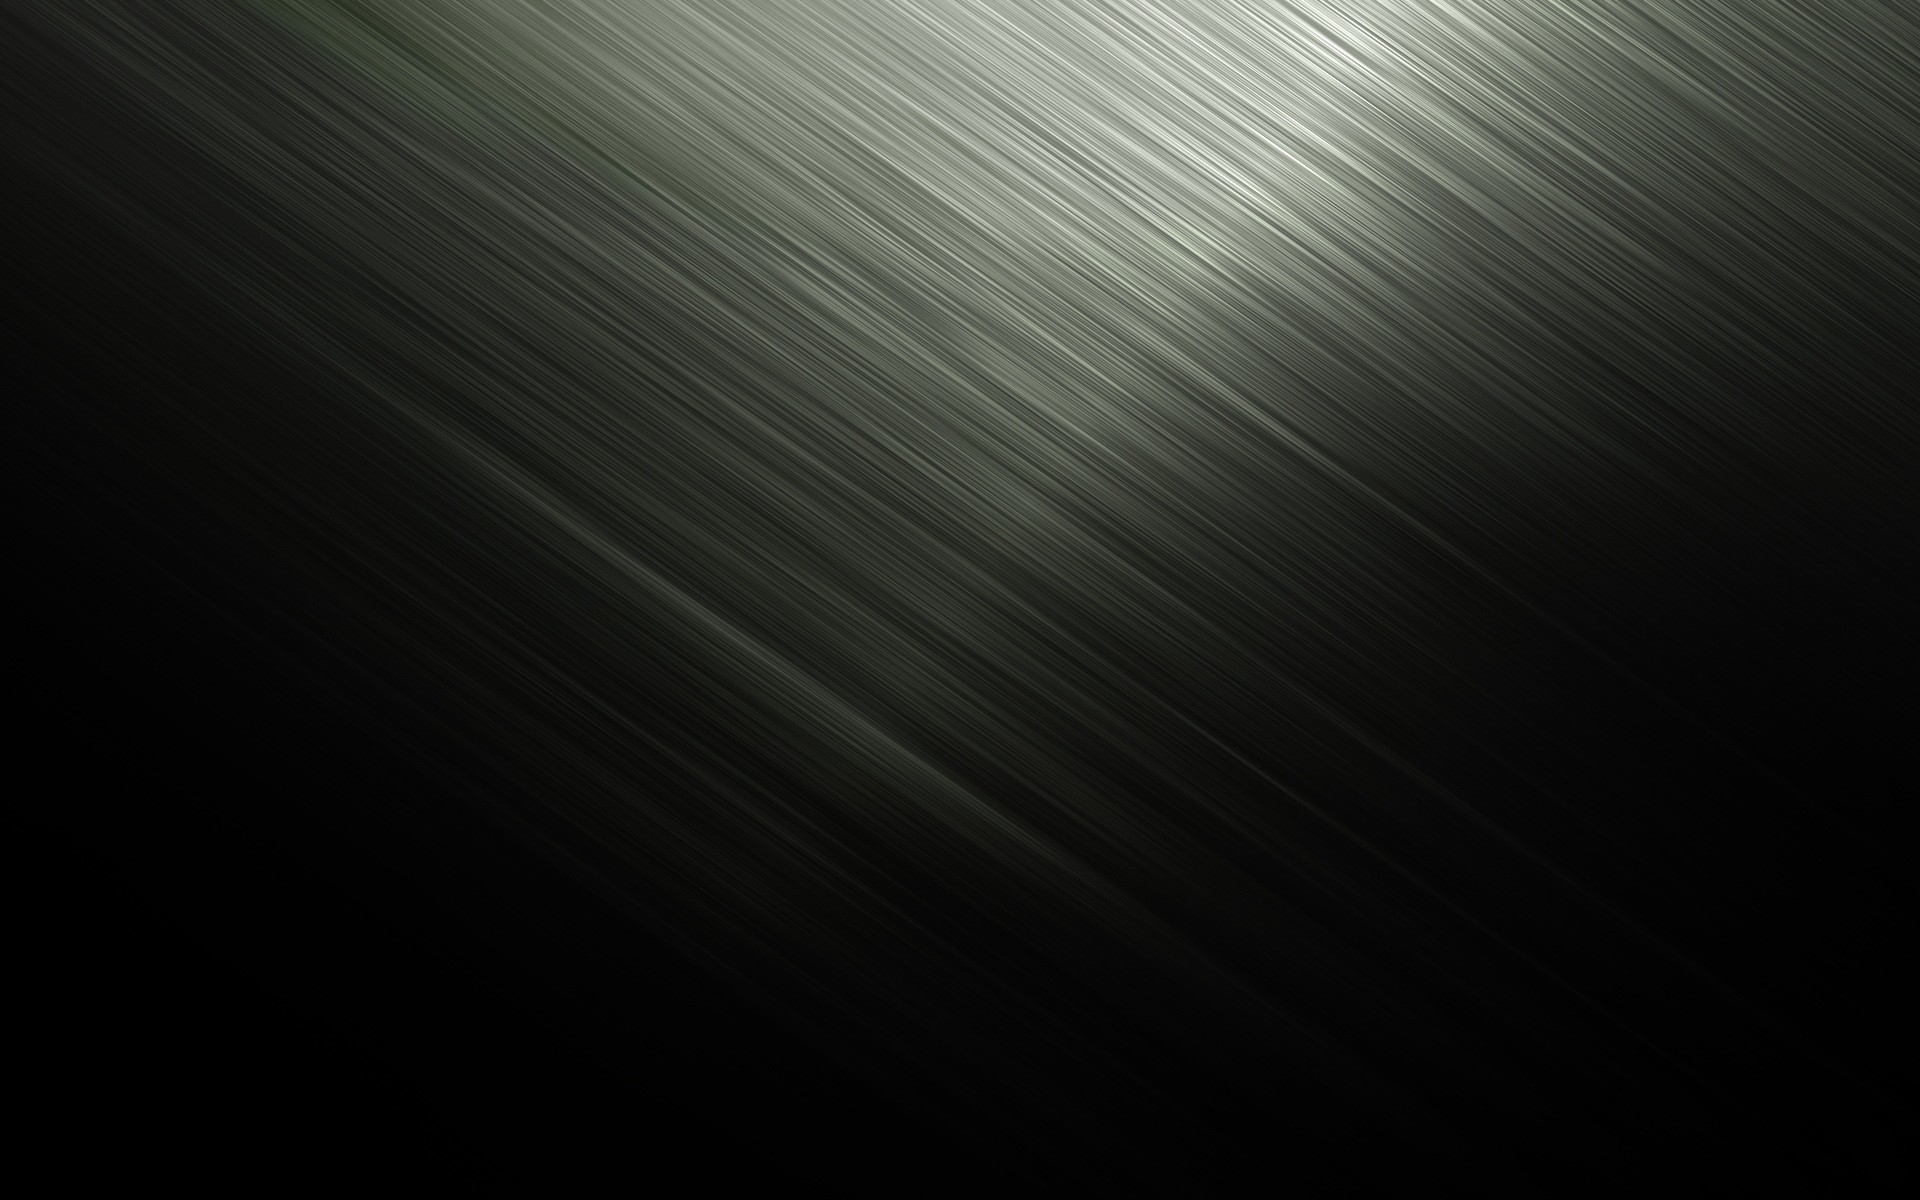 Abstract Black Wallpaper 1920x1200 Abstract Black 1920x1200